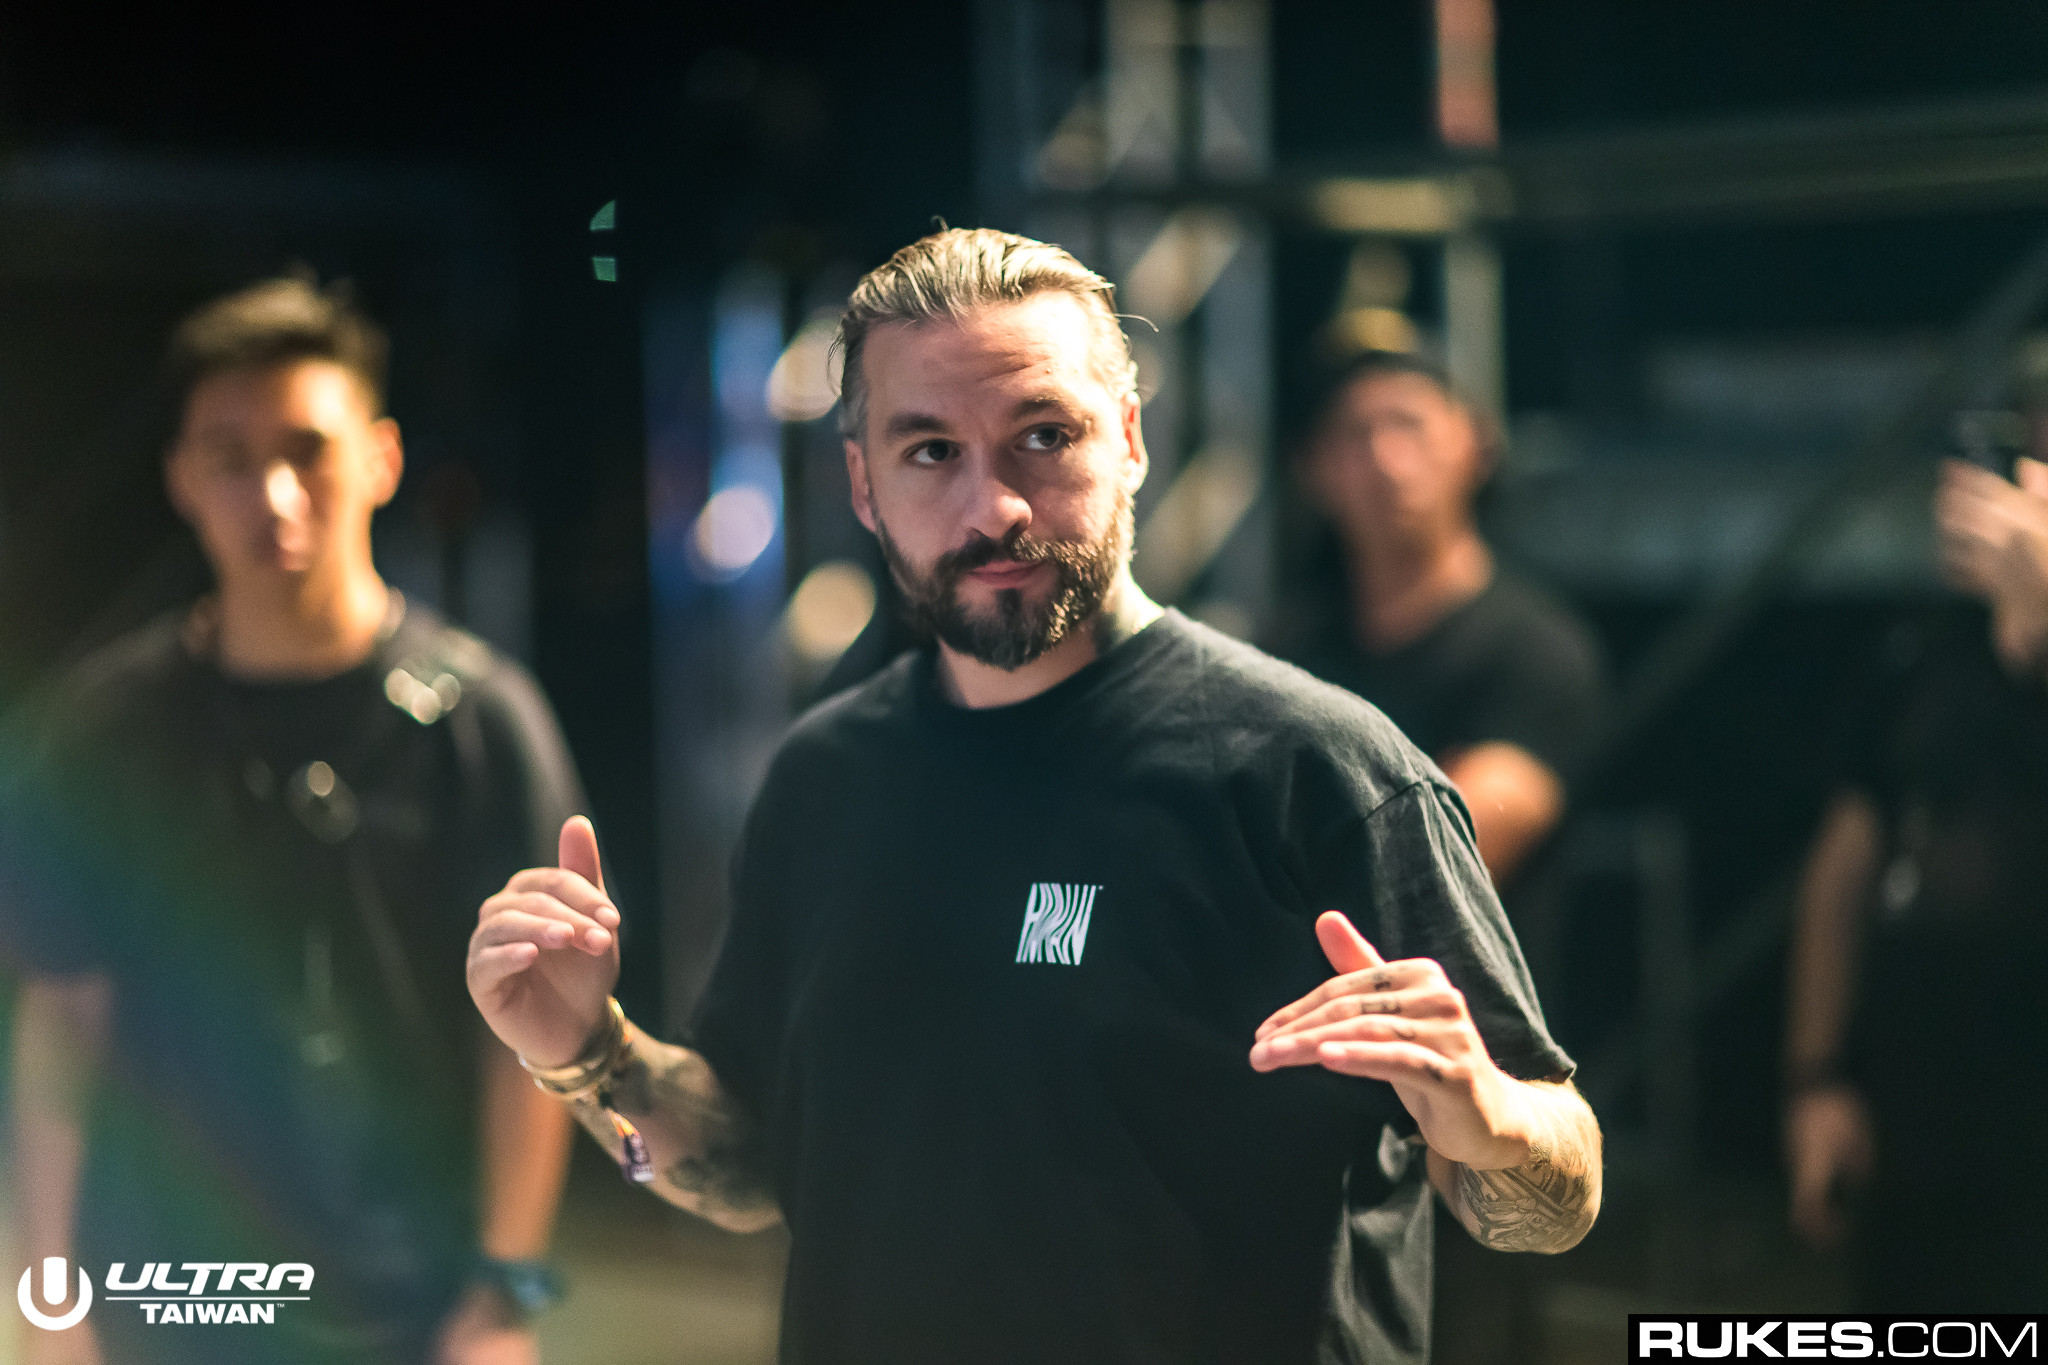 Steve Angello Says Swedish House Mafia Has Already Played Out 5 New Songs